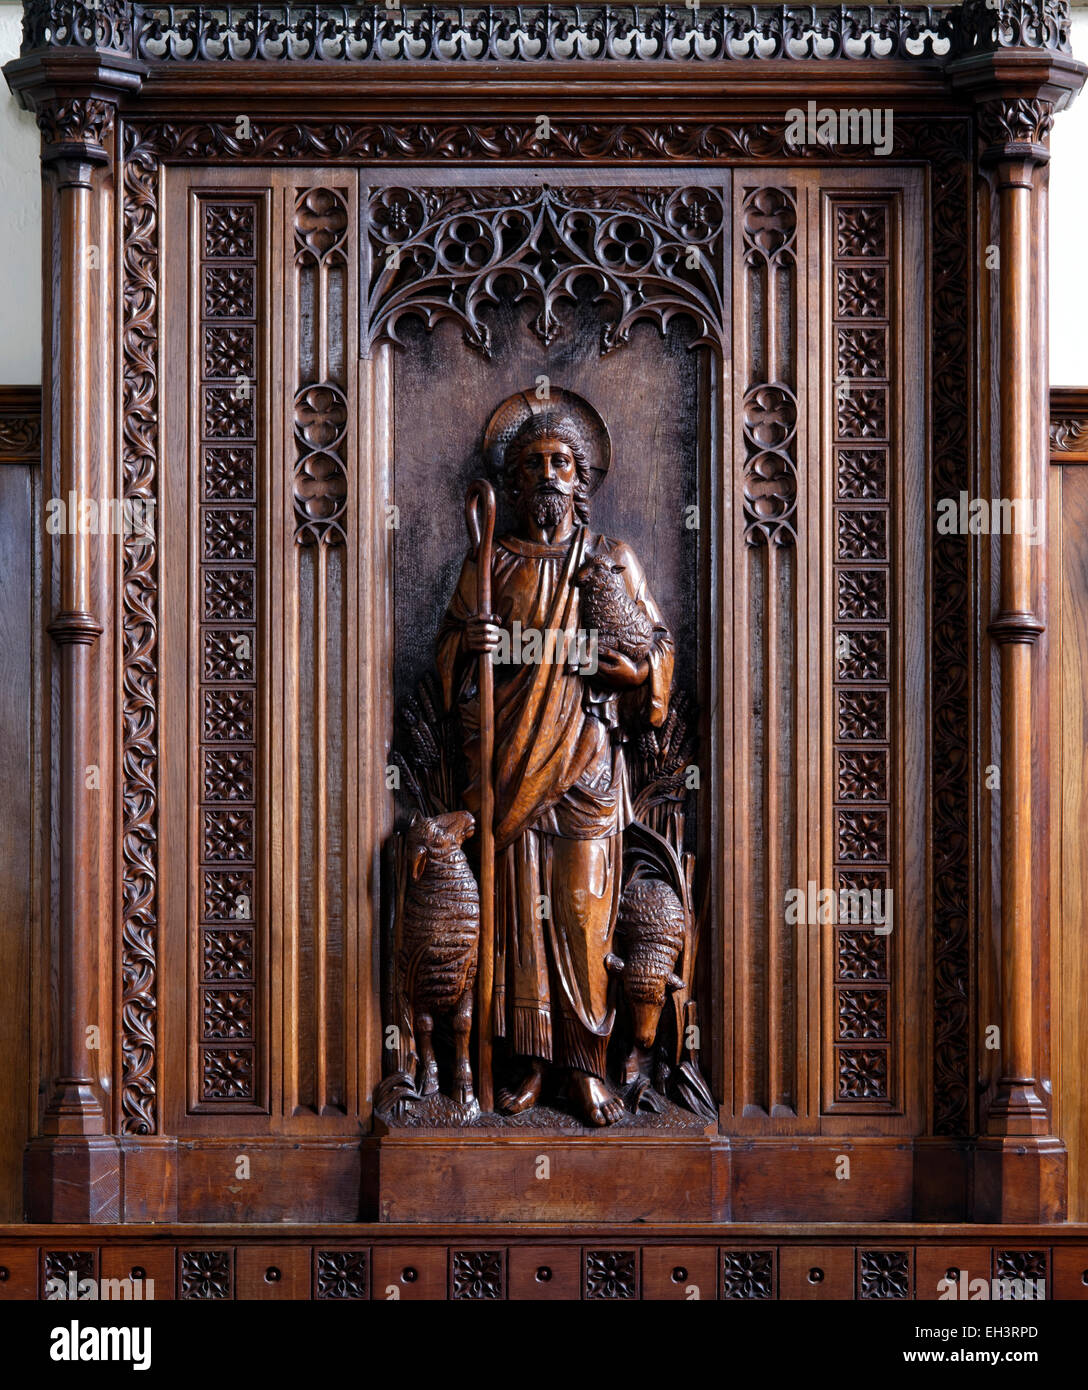 The unique oak reredos in memory of J. Milner, rector of  St. Mary the Virgin Church, MIddleton-in-Teesdale, County - Stock Image